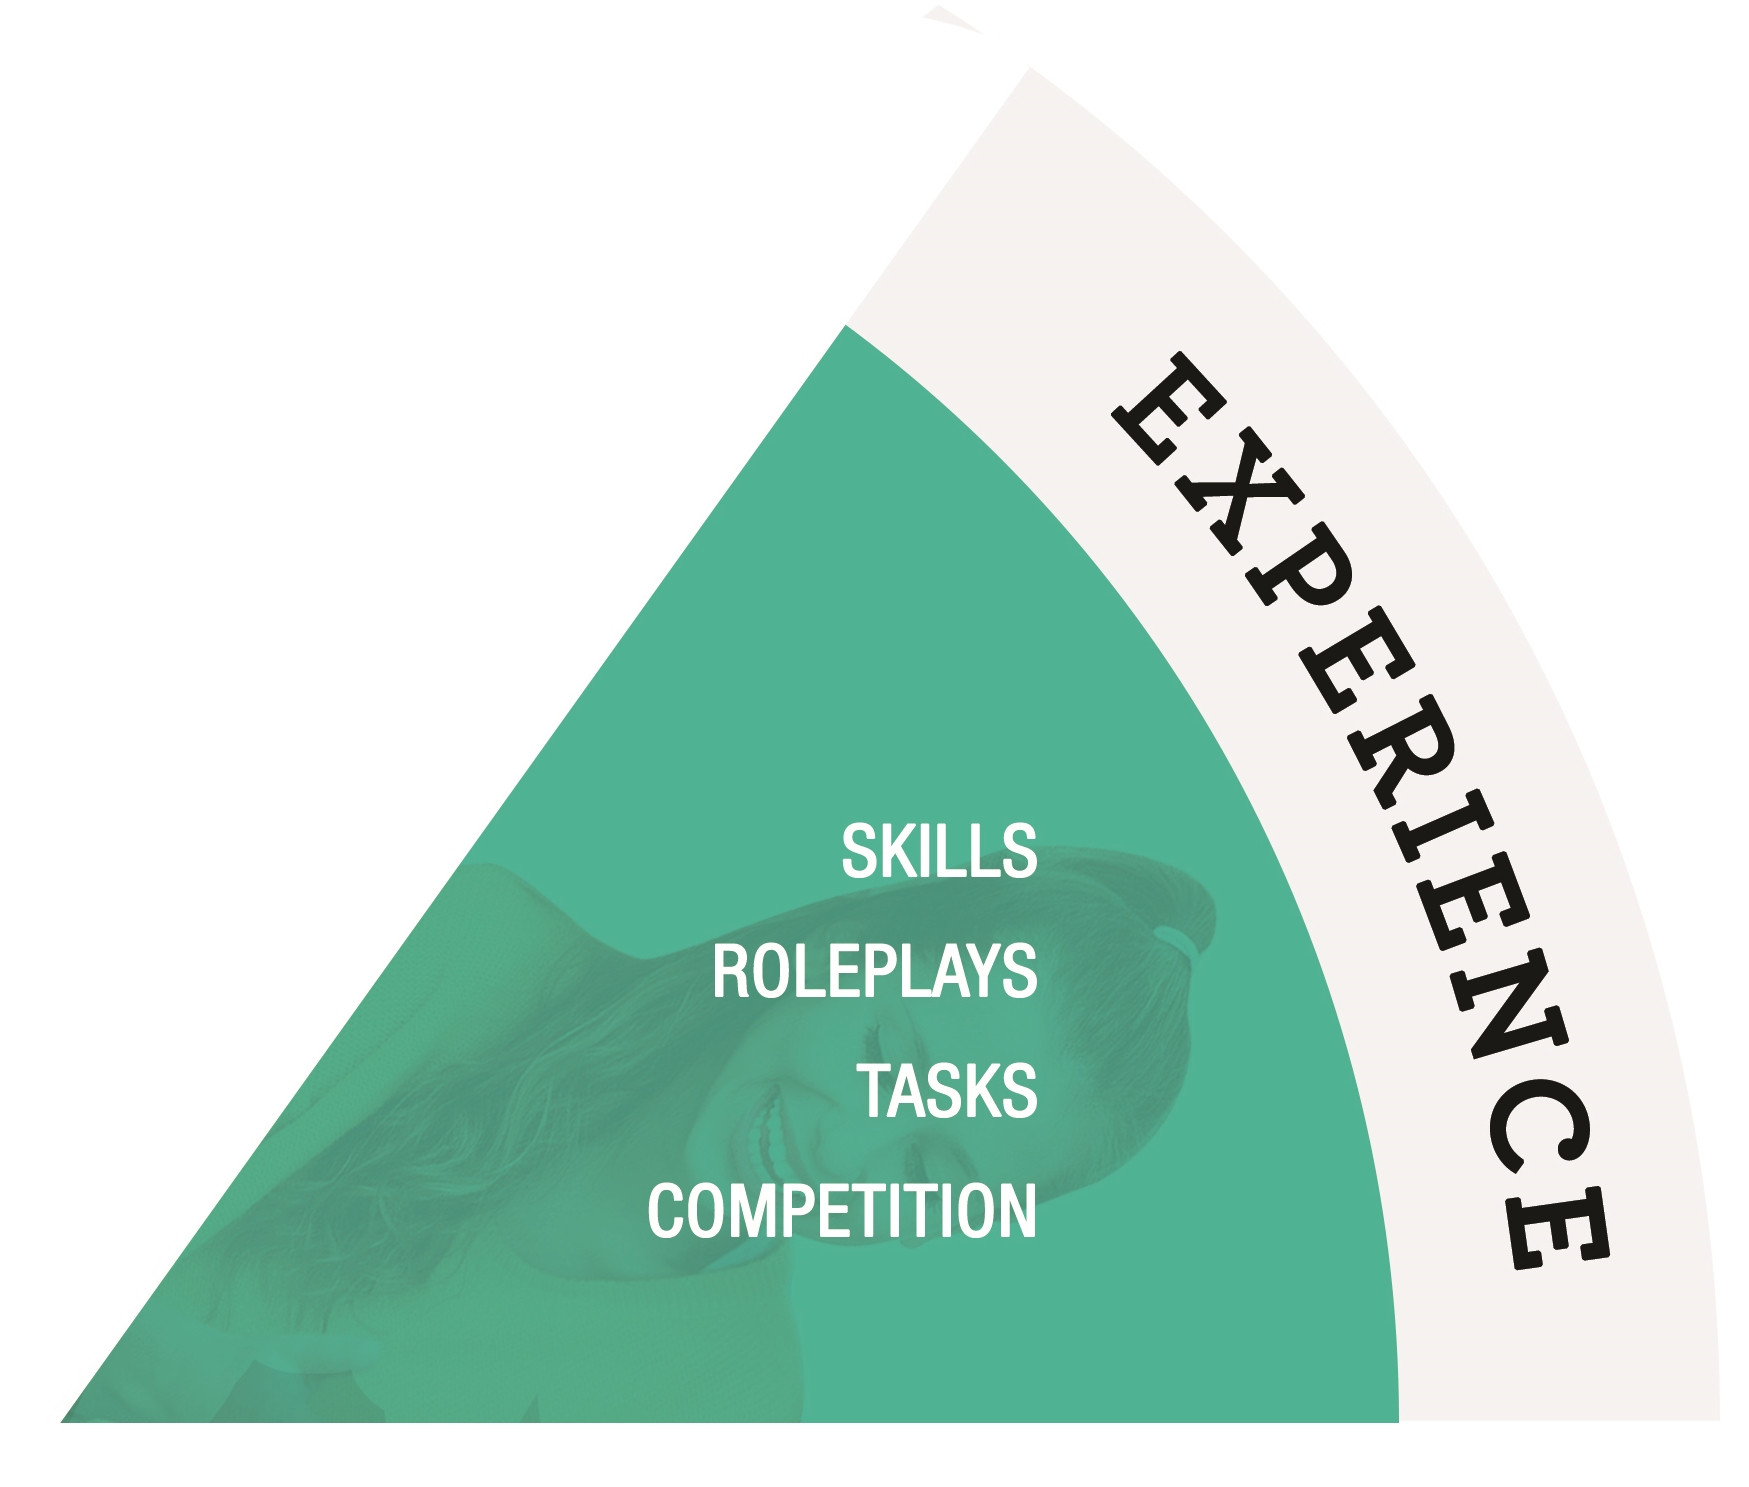 skills in learning